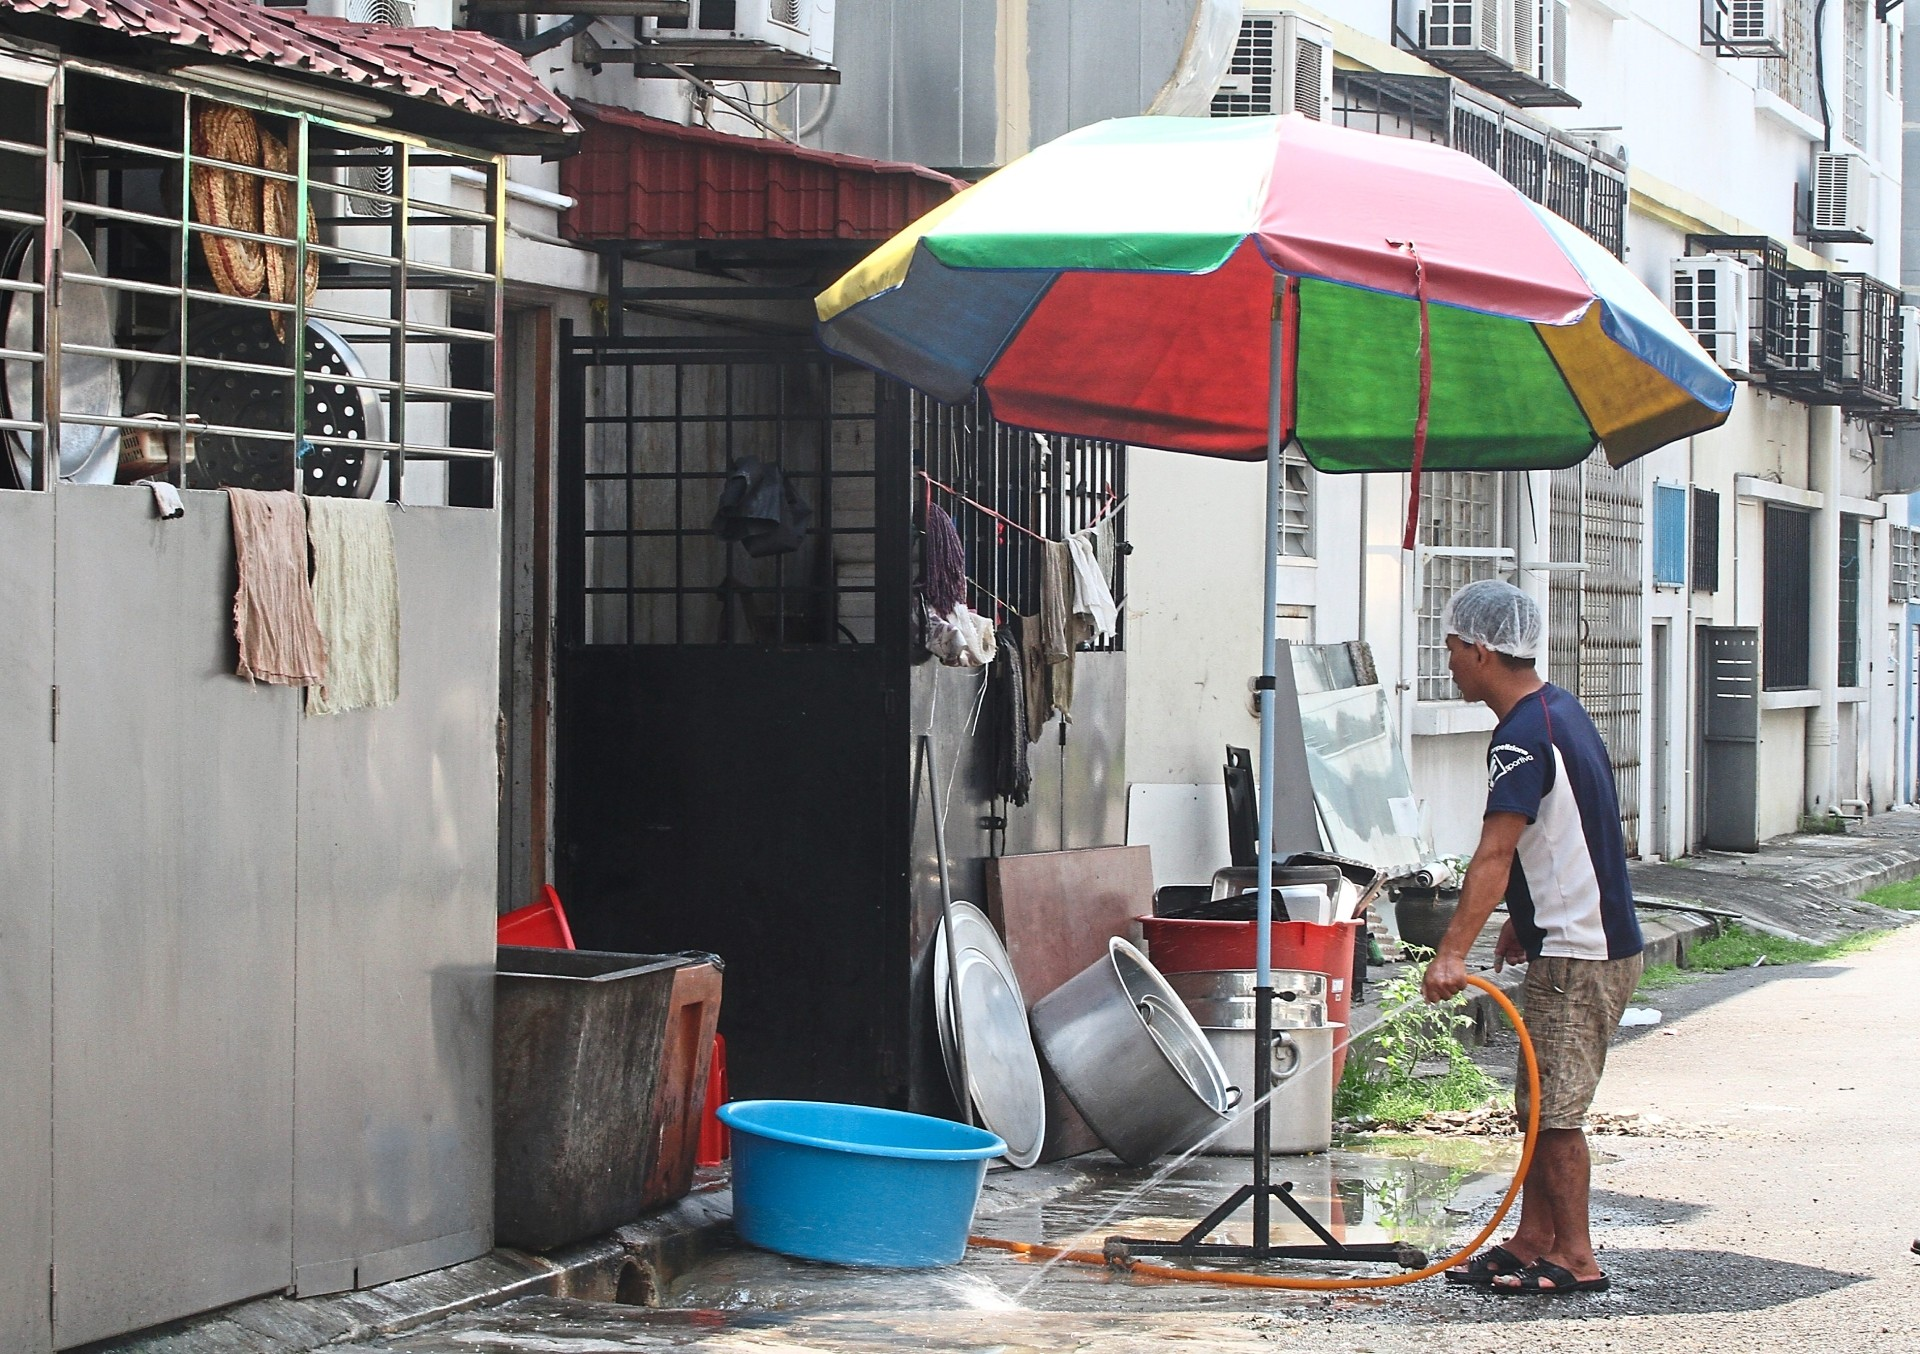 MPK's Health and Environment Department conducted a spot check on restaurants in Bandar Botanic that were using back lanes as a makeshift washing area.